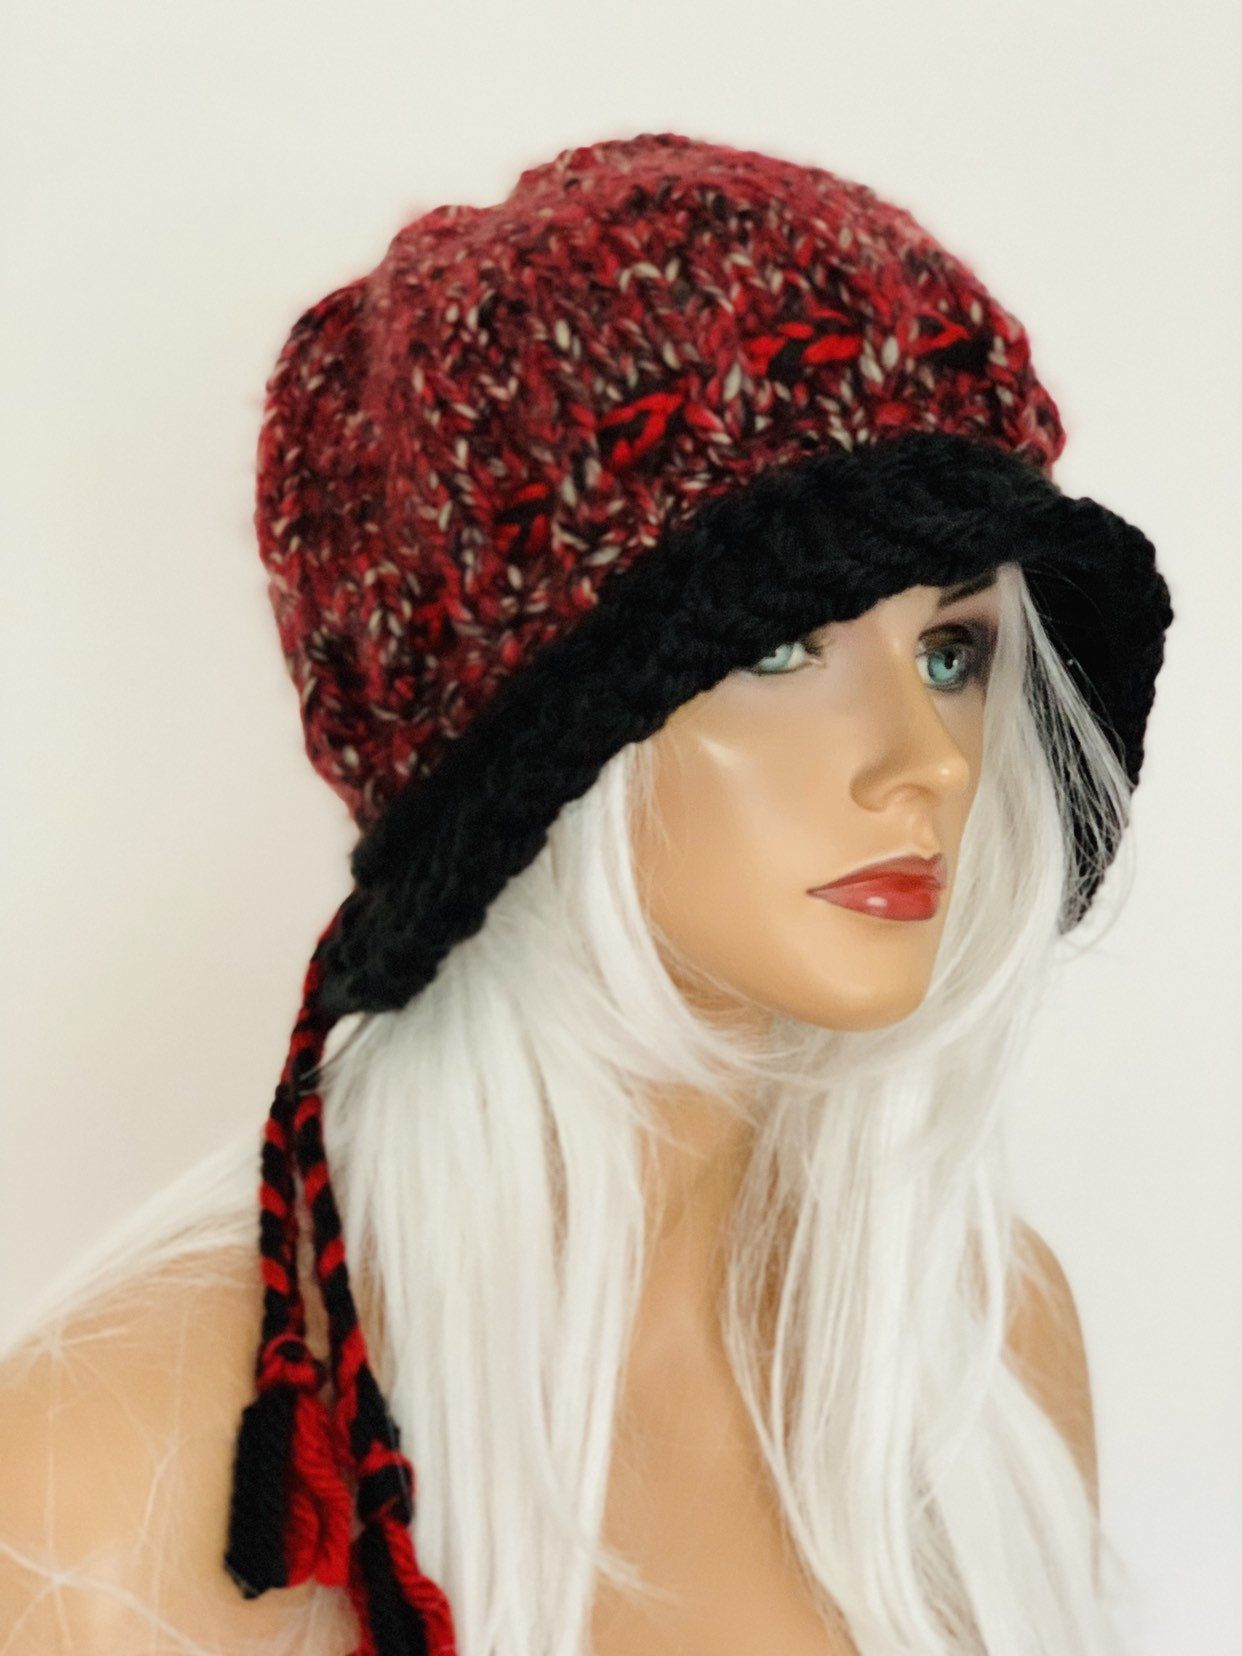 a6e9ea057b6 Excited to share this item from my  etsy shop  Hand Knits 2 Love Hat With  Valance Beanie Cap Slouch Adjustable Fit Designer Fashion Burgundy Black  Beige ...